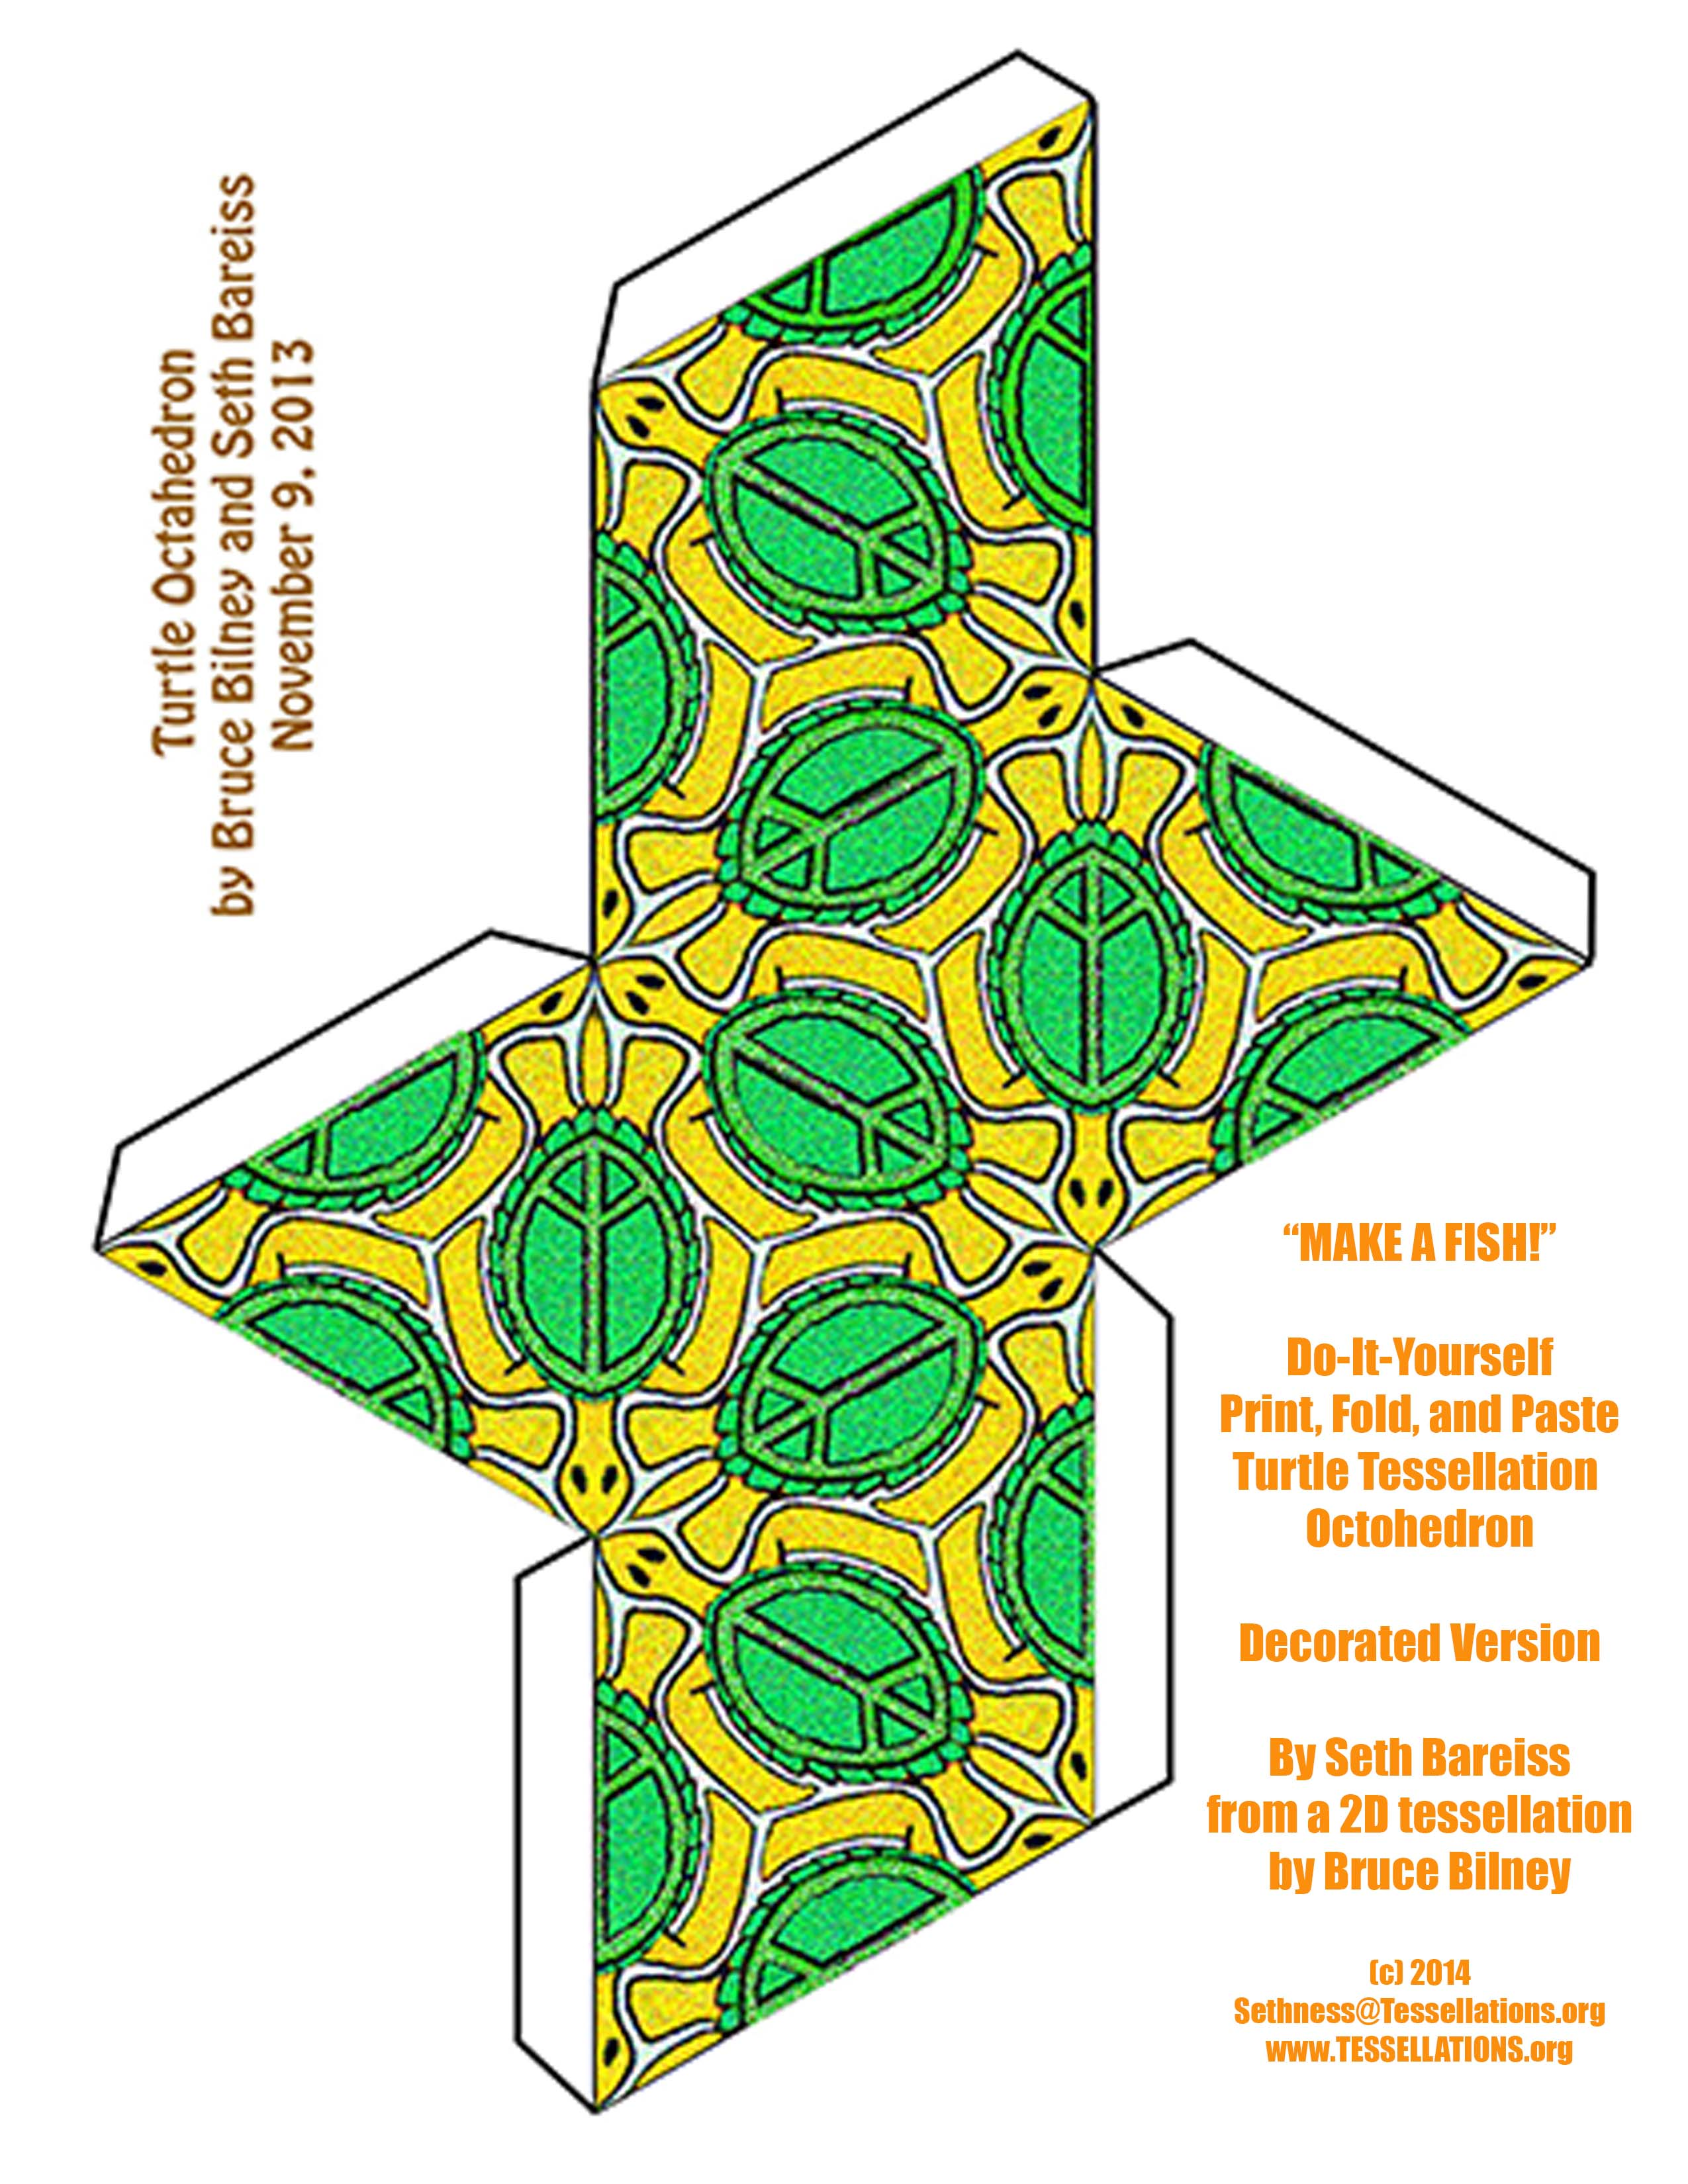 Tessellation In Real Materials 32 Diy Papercraft Turtle